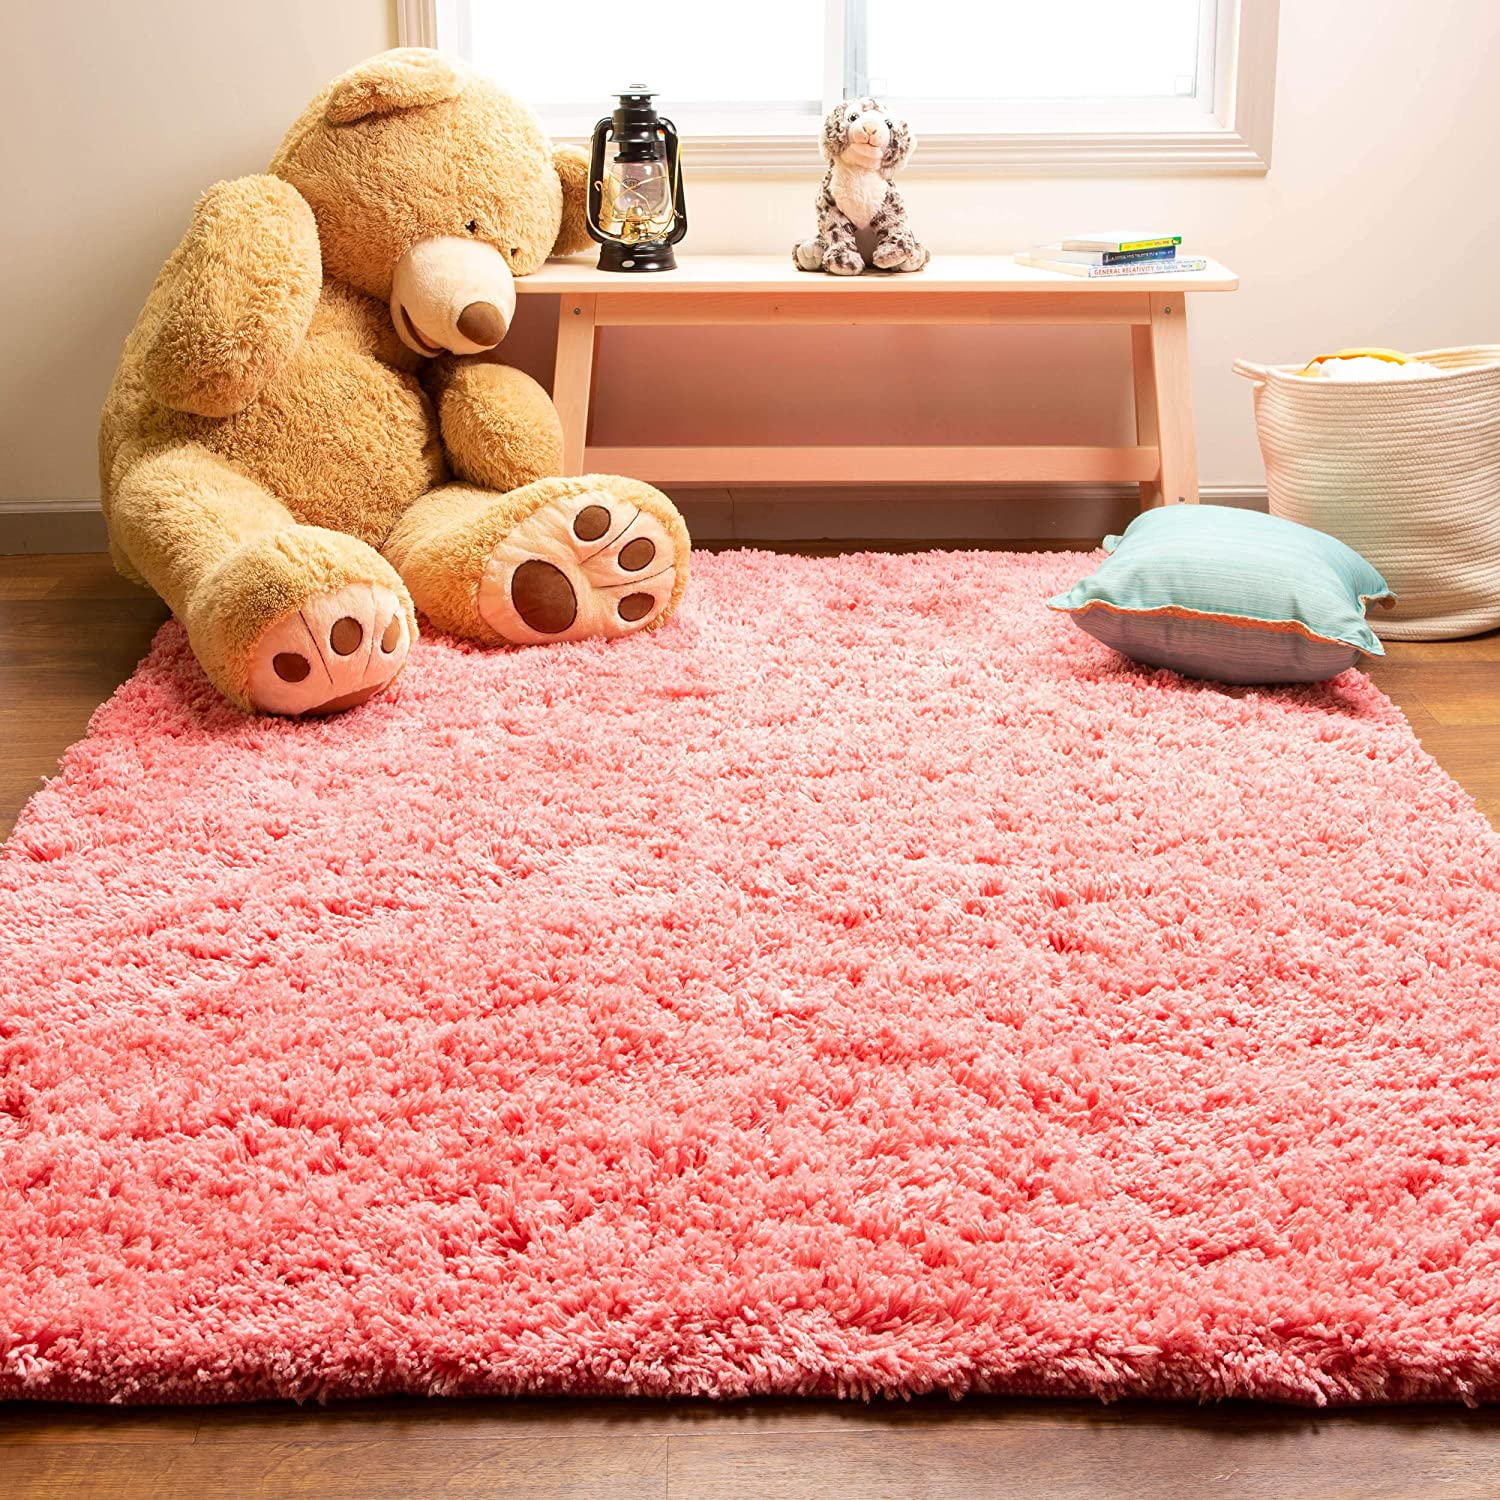 Red Soft Non-Shed Bright Plain Shaggy Area Rug Mat Luxury 50mm Thick Deep Pile